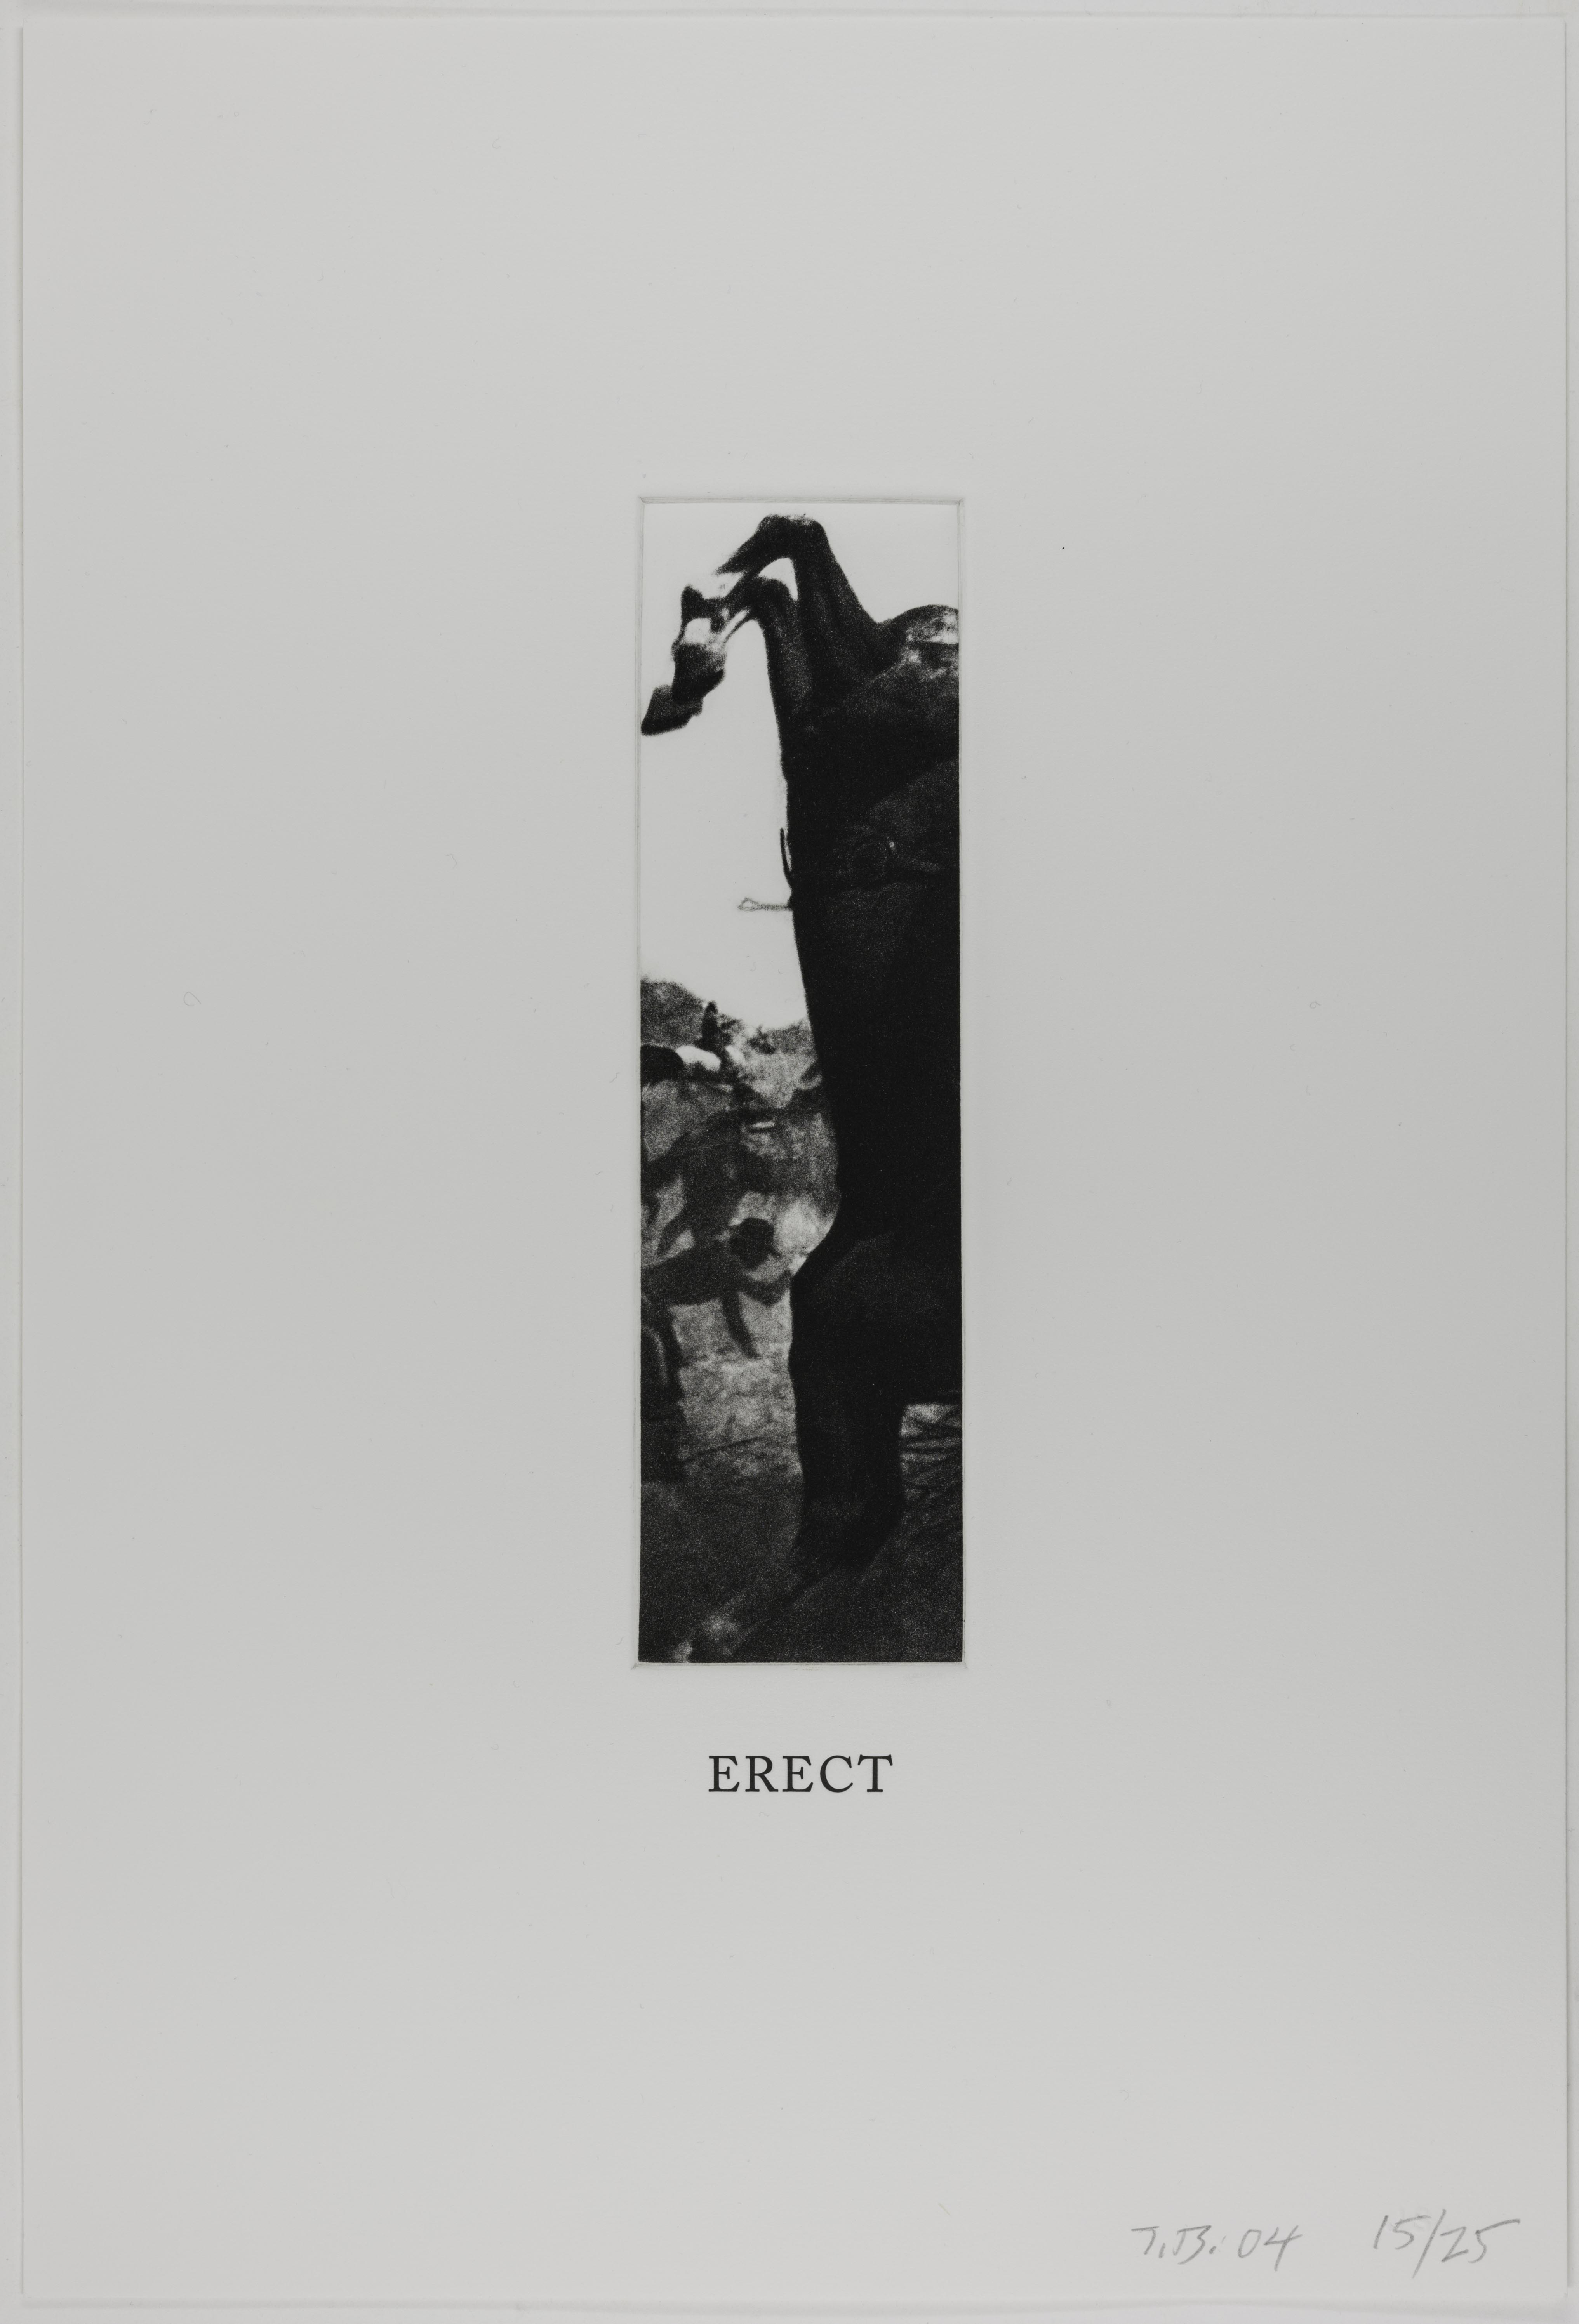 John Baldessari, Erect (Some Narrow Views), 2004